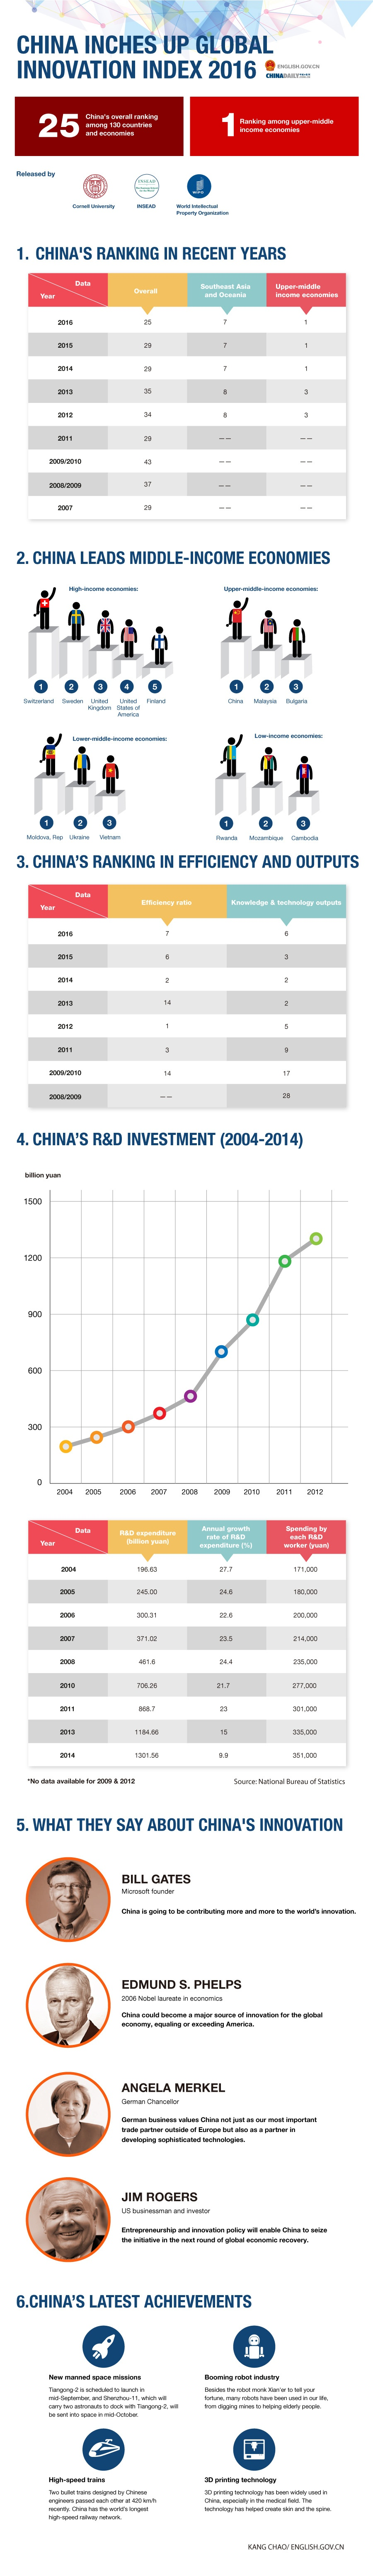 China Innovation Ranking Infographic